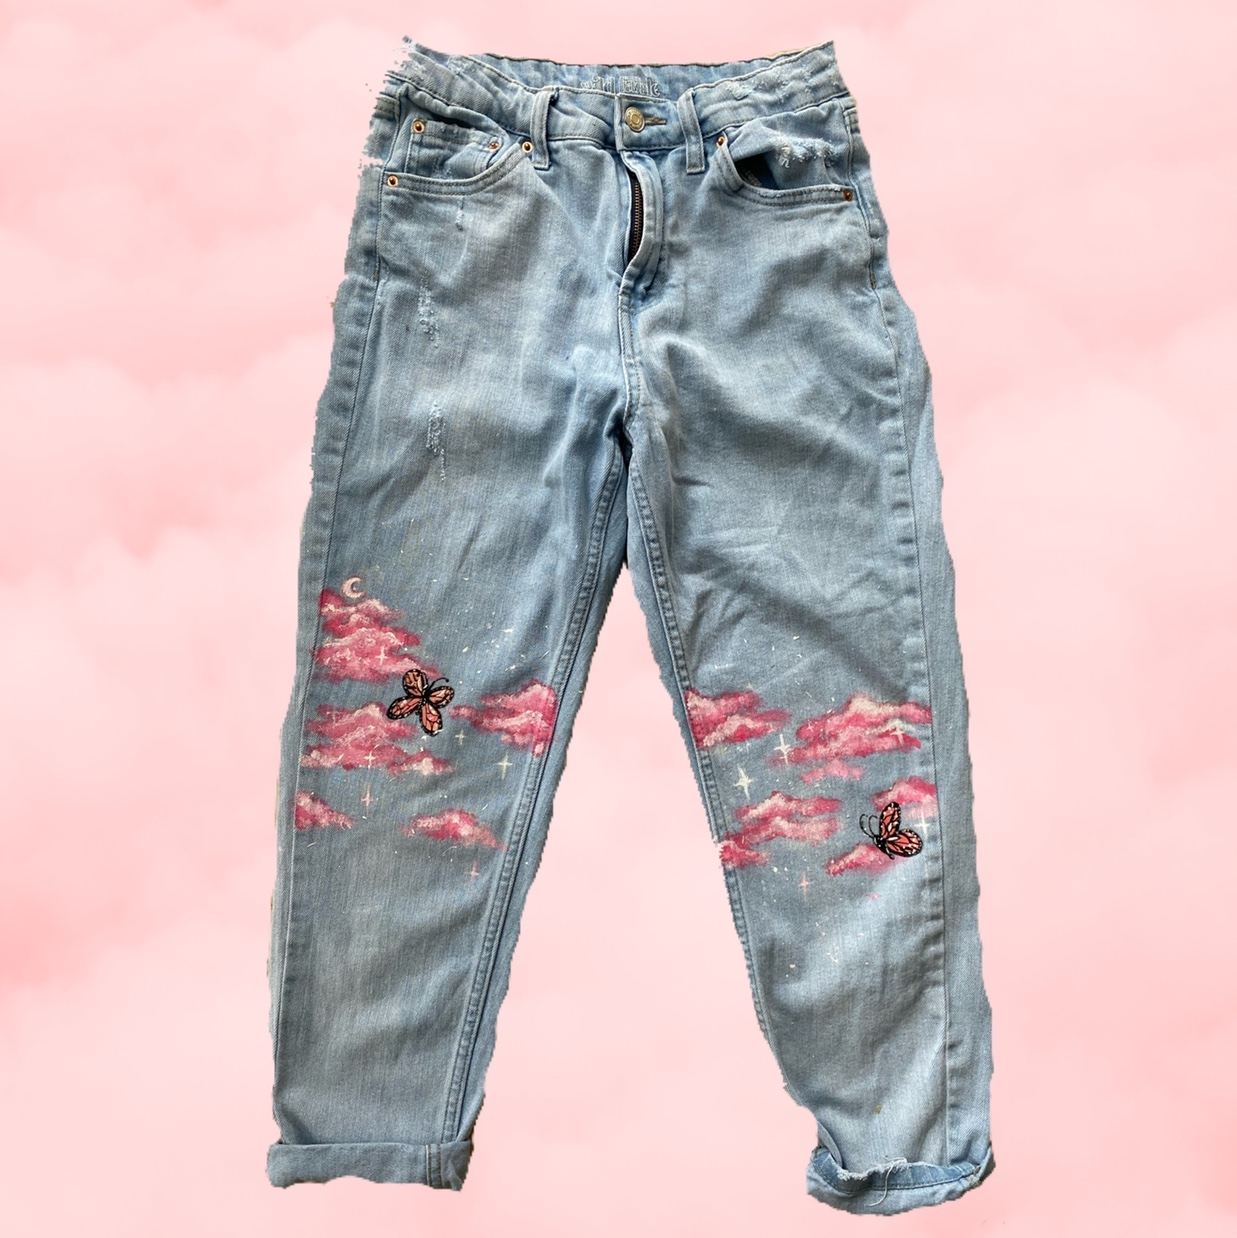 Product Image 1 - Hand-painted jeans Pink clouds, stars, and